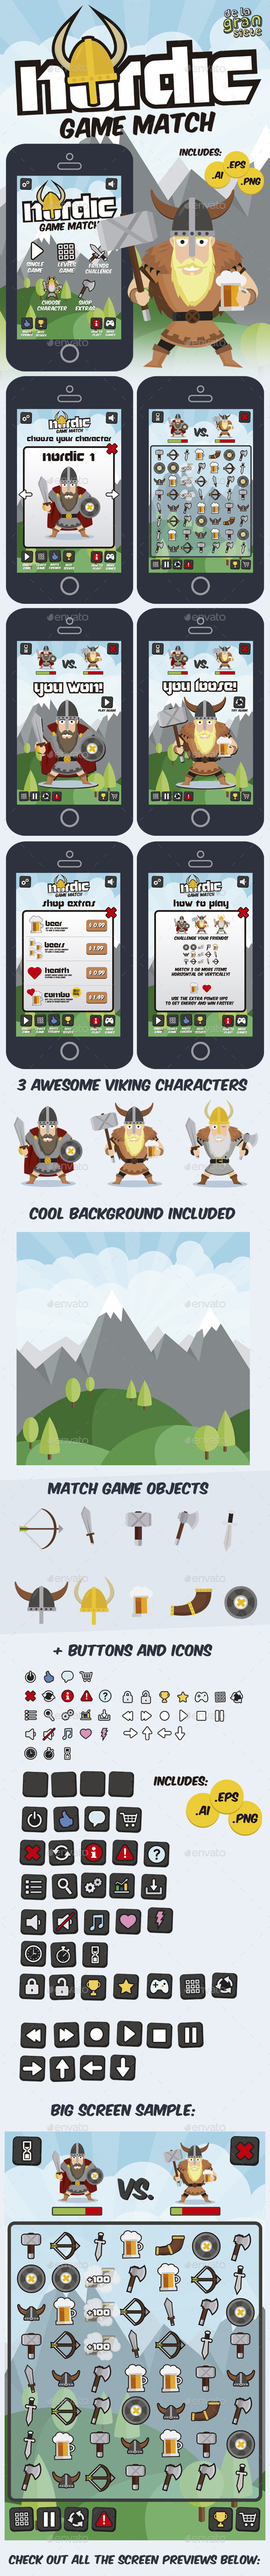 Nordic Vikings Match 3 Game Style Assets - Game Kits Game Assets